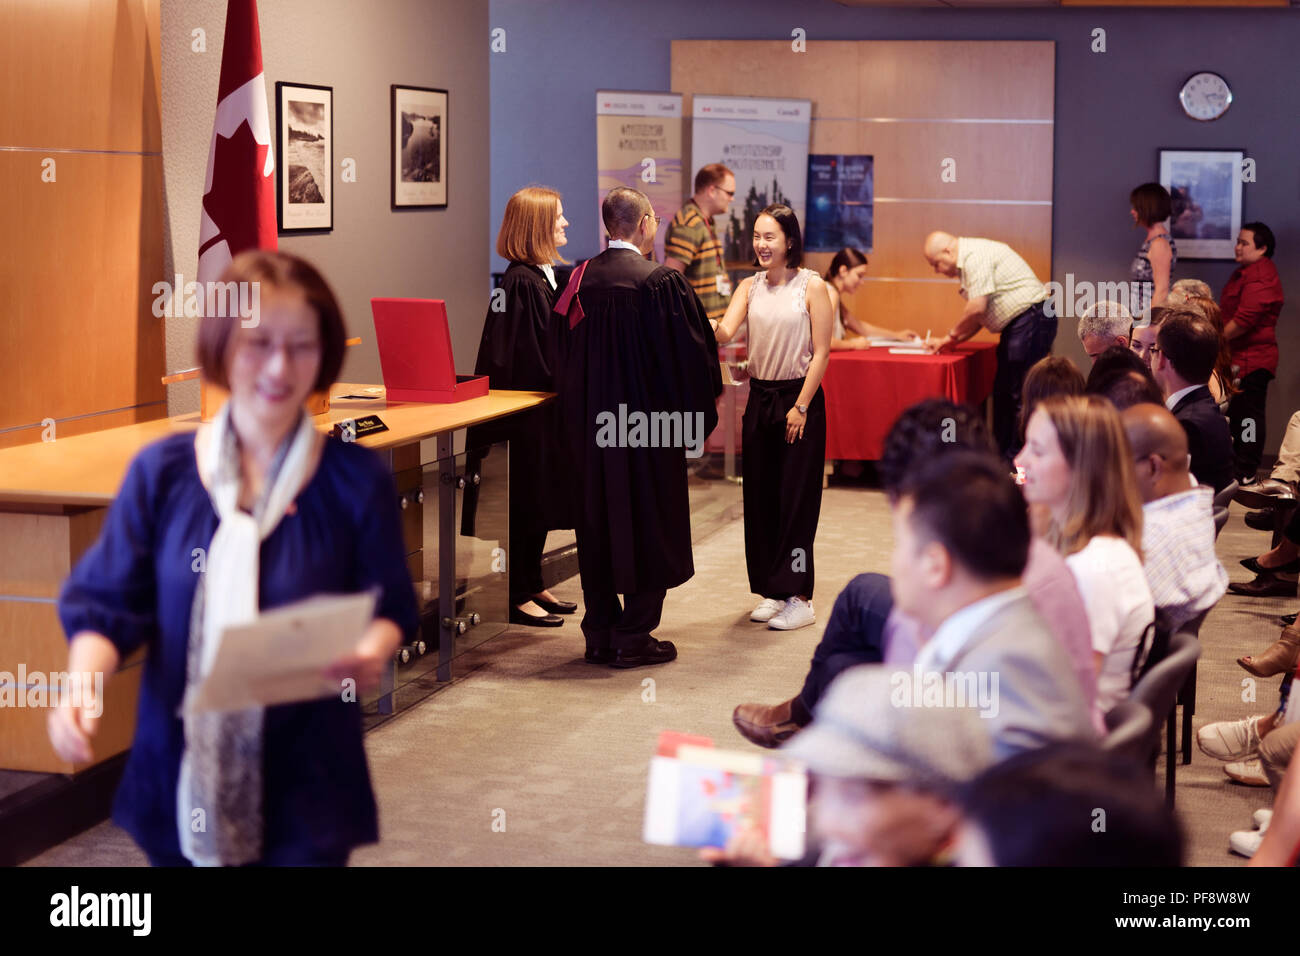 New Canadian citizens receiving their Citizenship certificates at a Citizenship ceremony in Vancouver, British Columbia, Canada 2018 - Stock Image